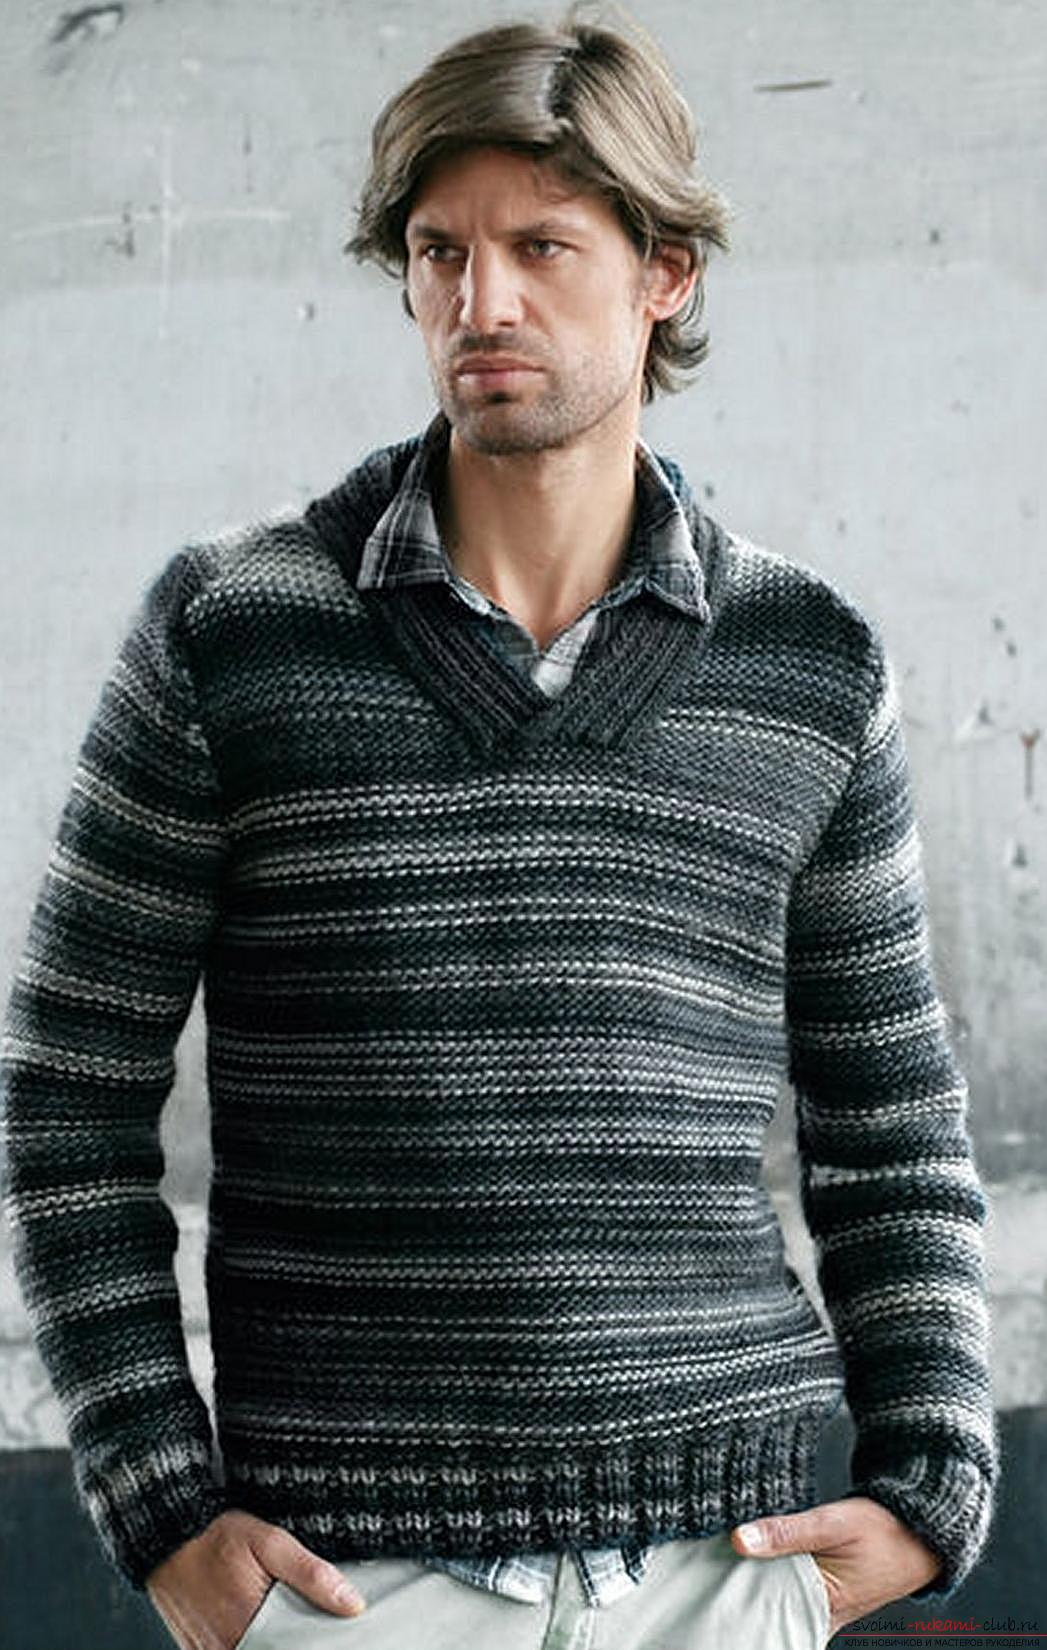 Elegant men's pullover with knitting needles. Photo №5